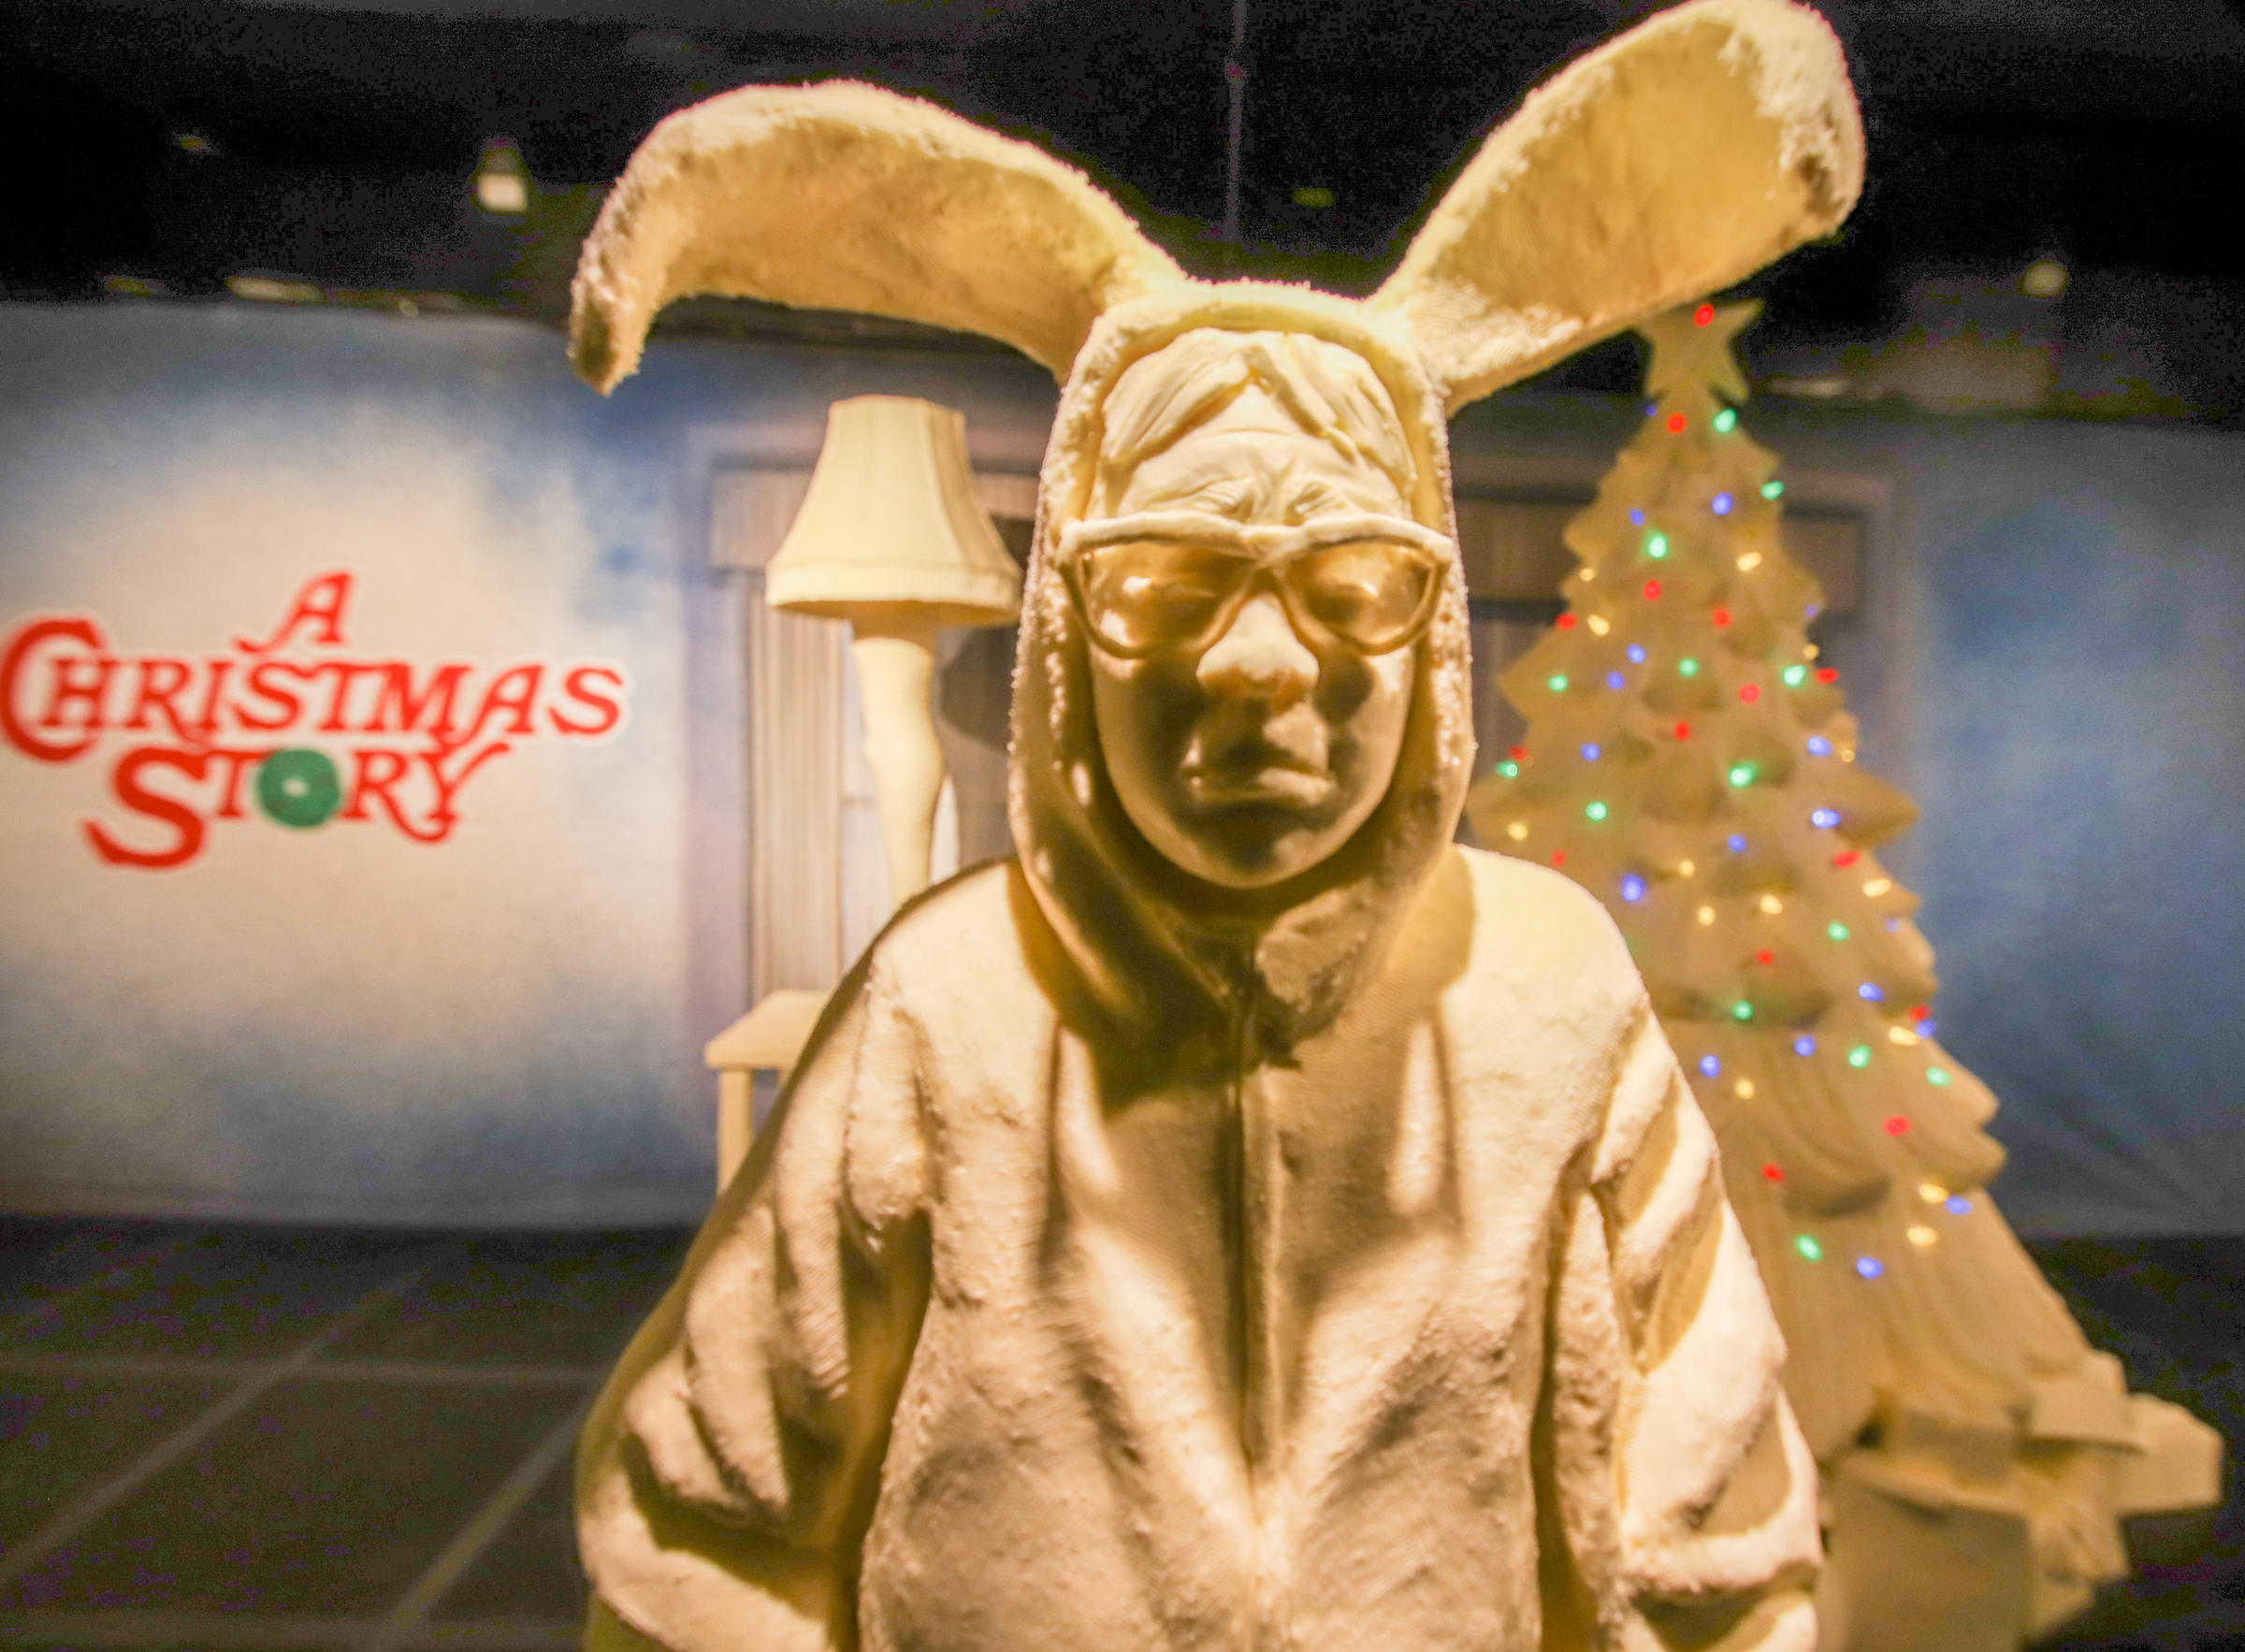 a christmas story was filmed in cleveland - Where Was The Christmas Story Filmed